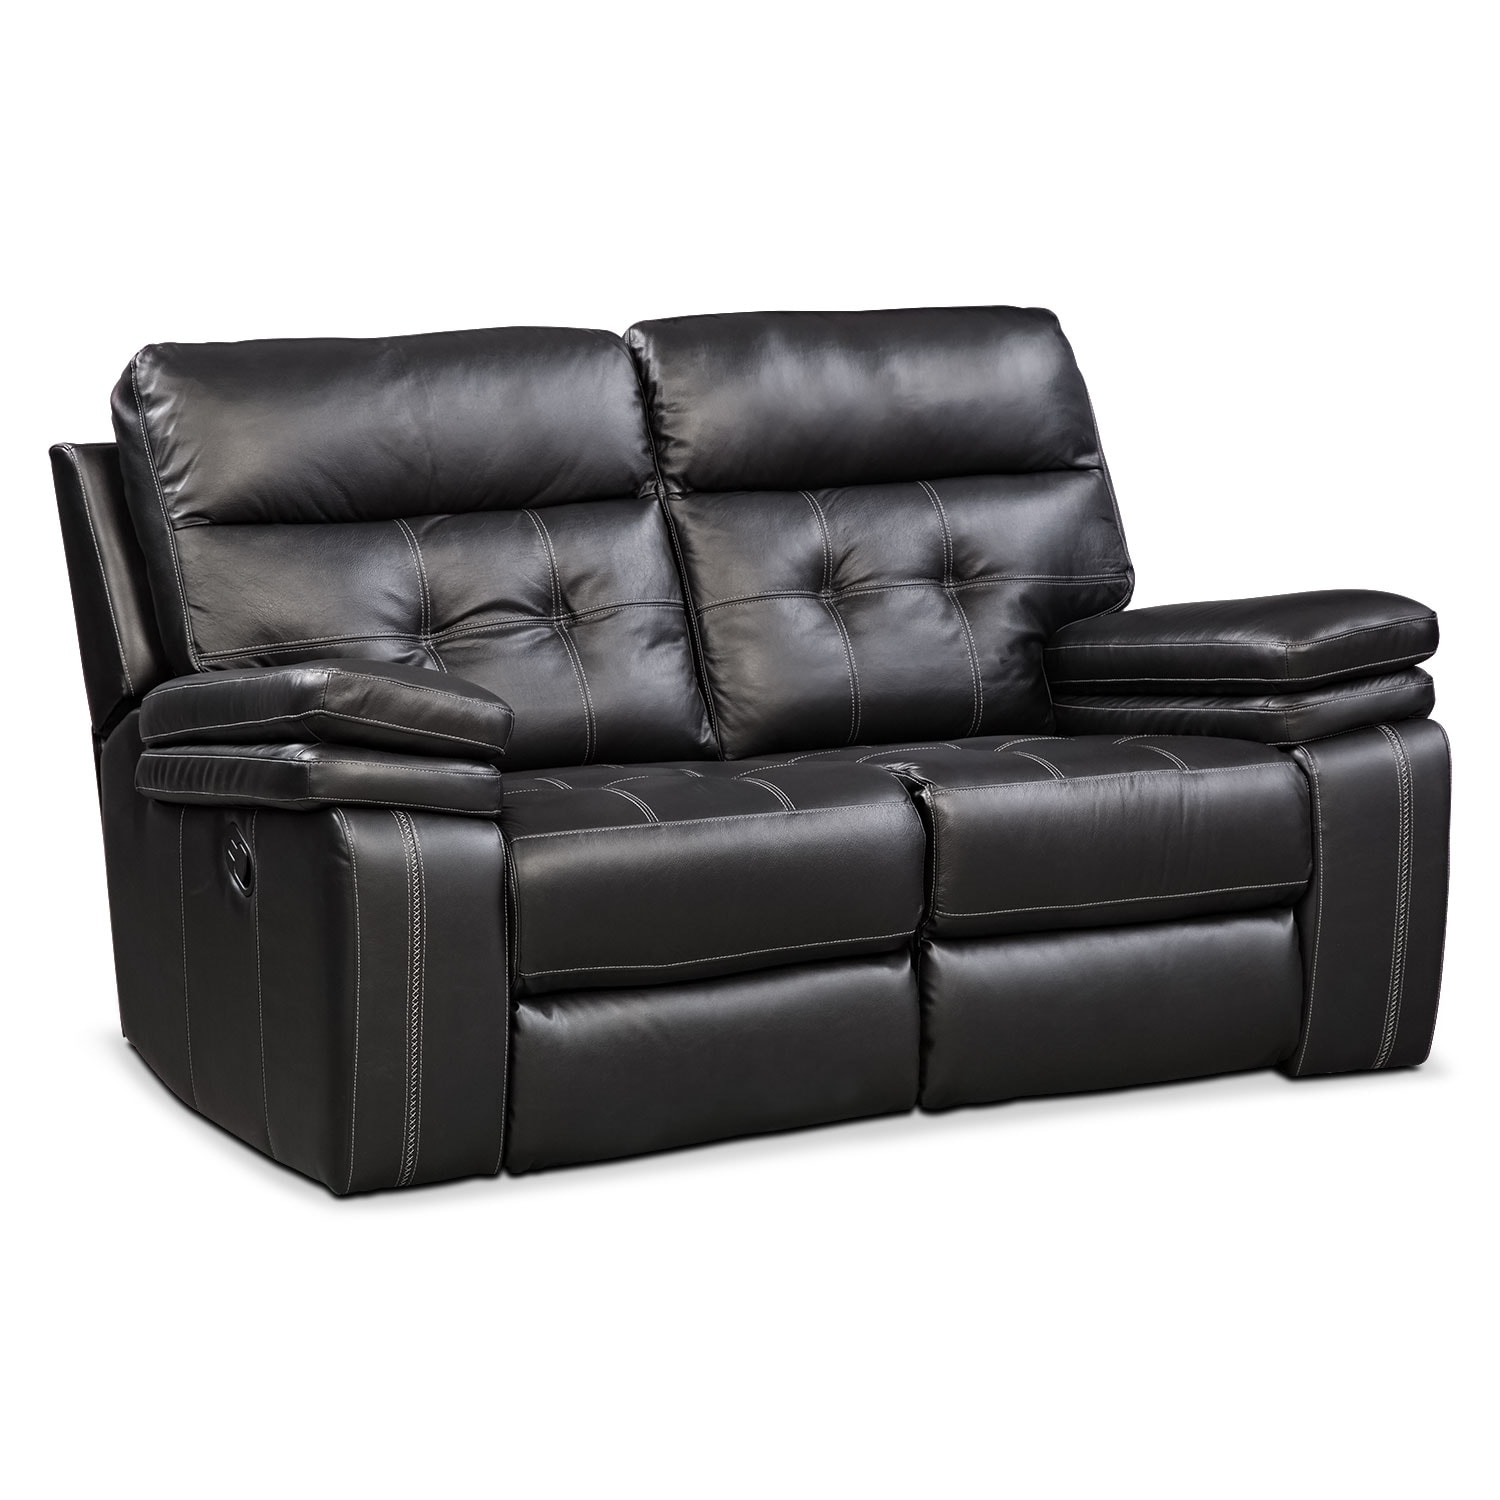 Living Room Furniture - Brisco Black Manual Reclining Loveseat